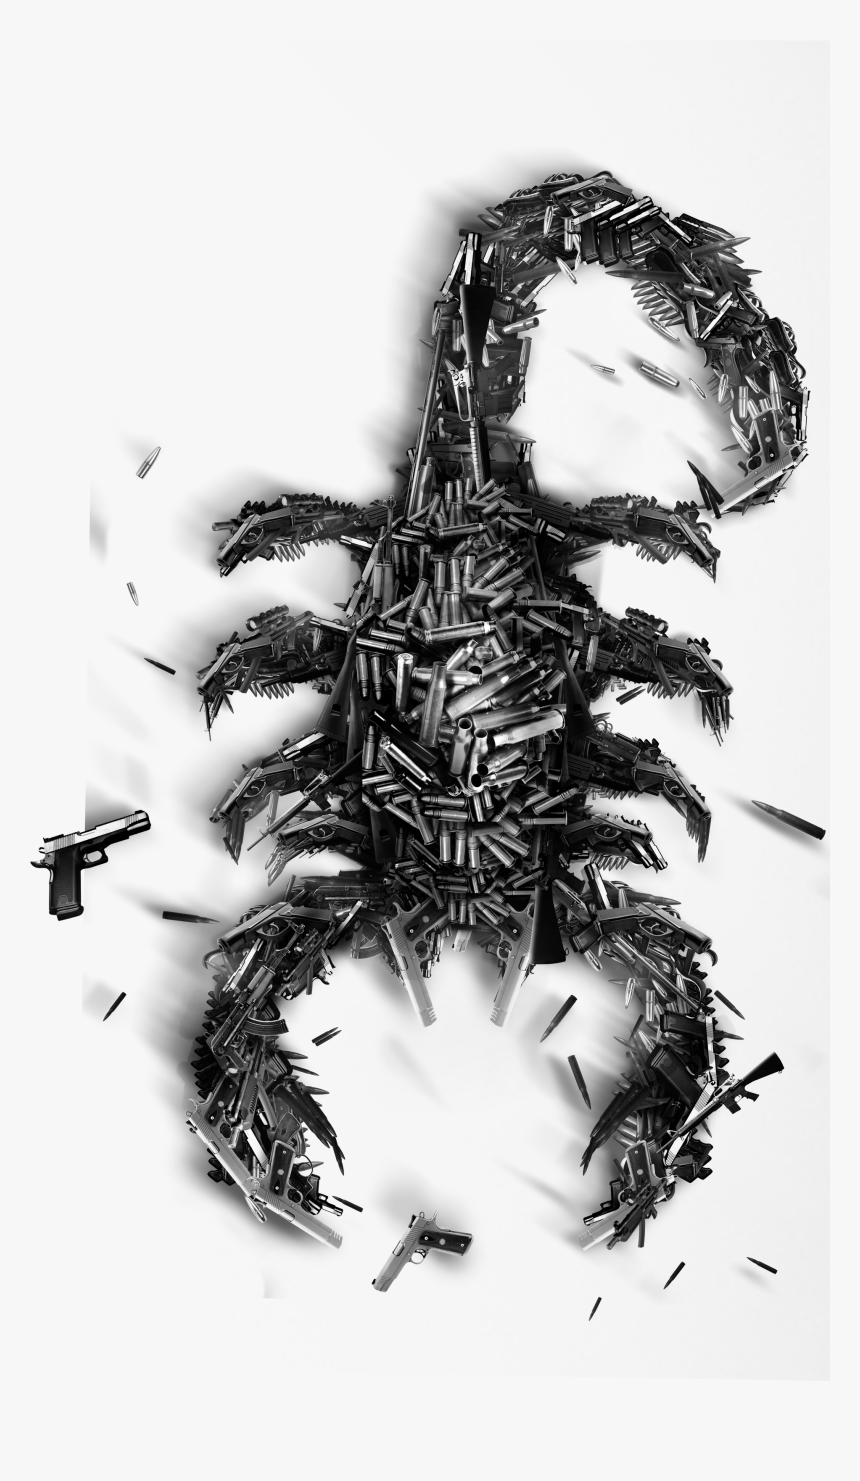 Transparent Just Cause 2 Png - Just Cause 2 Scorpion, Png Download, Free Download